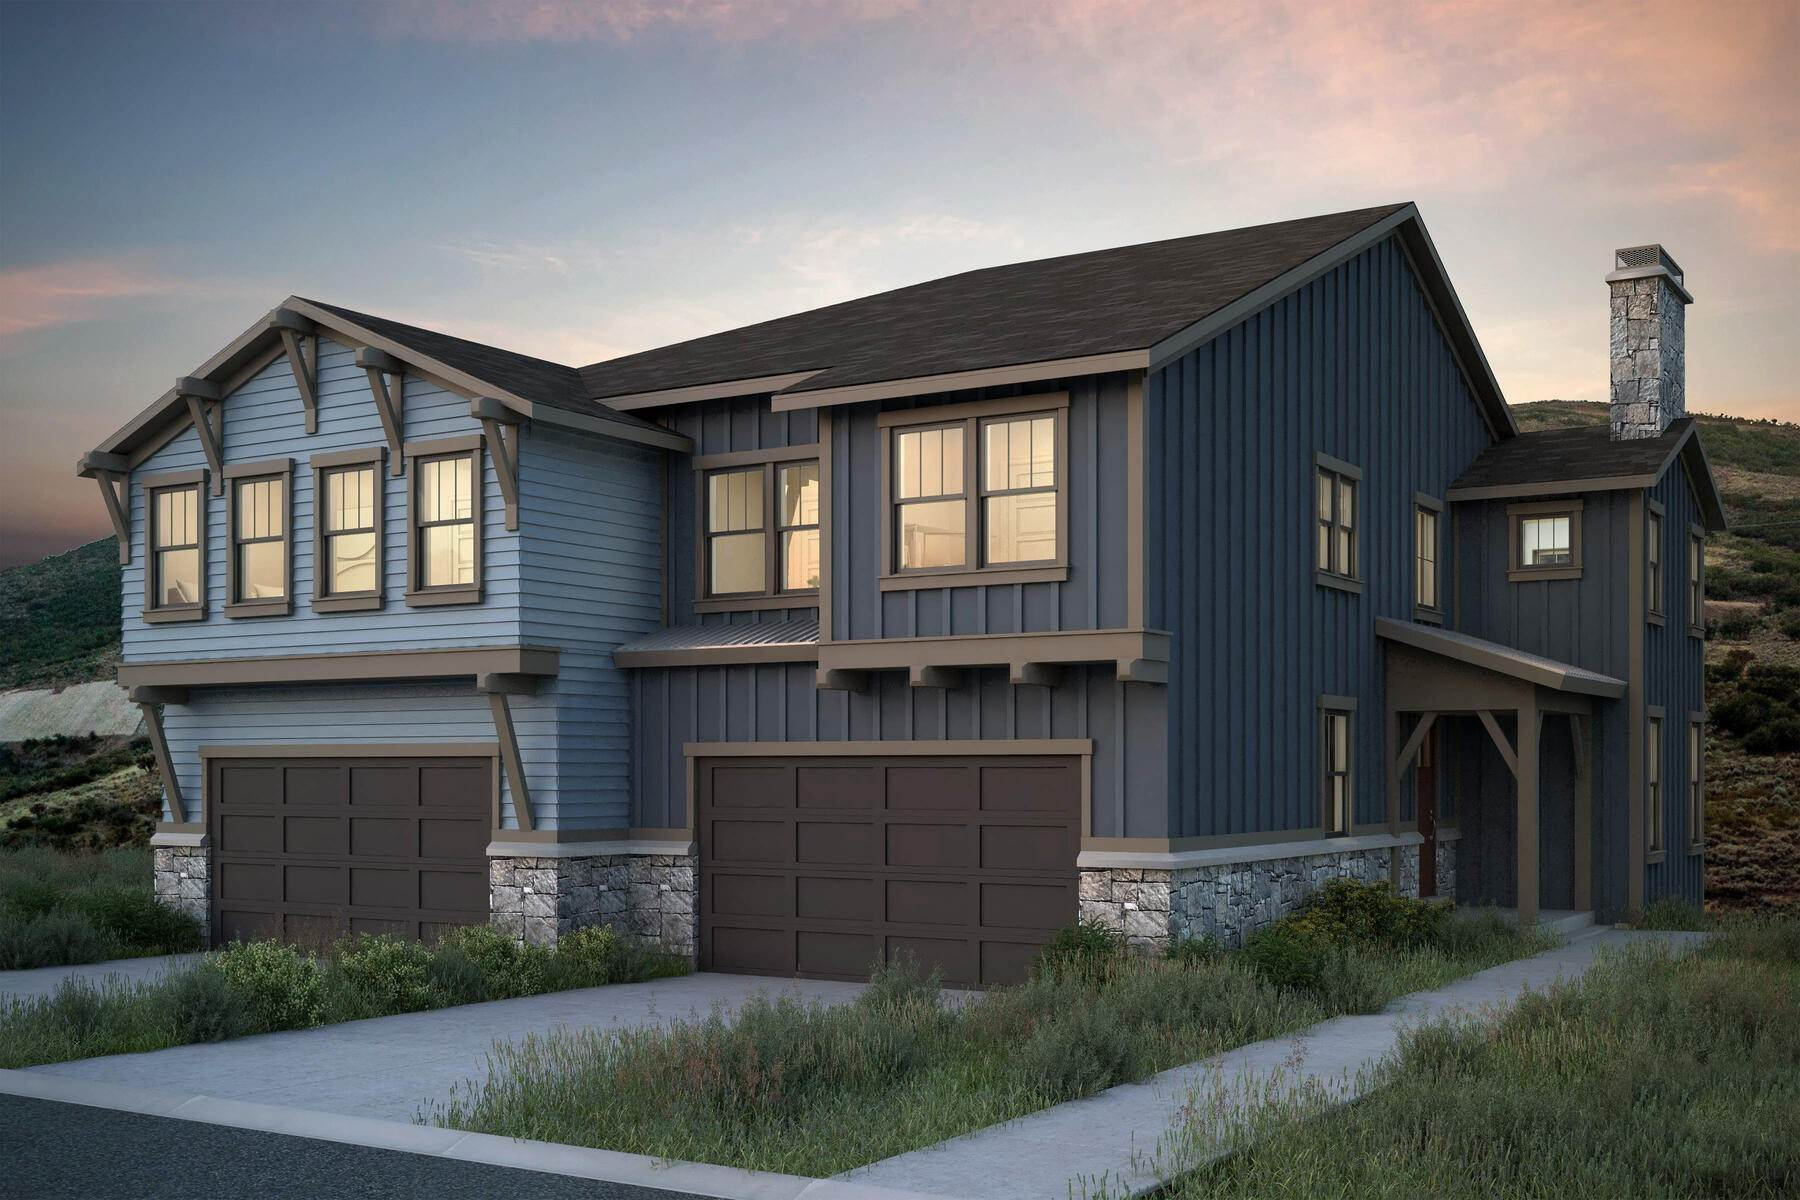 Single Family Homes for Sale at New Construction Townhome Just Minutes From Park City Lot #19 at Deer Springs Hideout Canyon, Utah 84036 United States